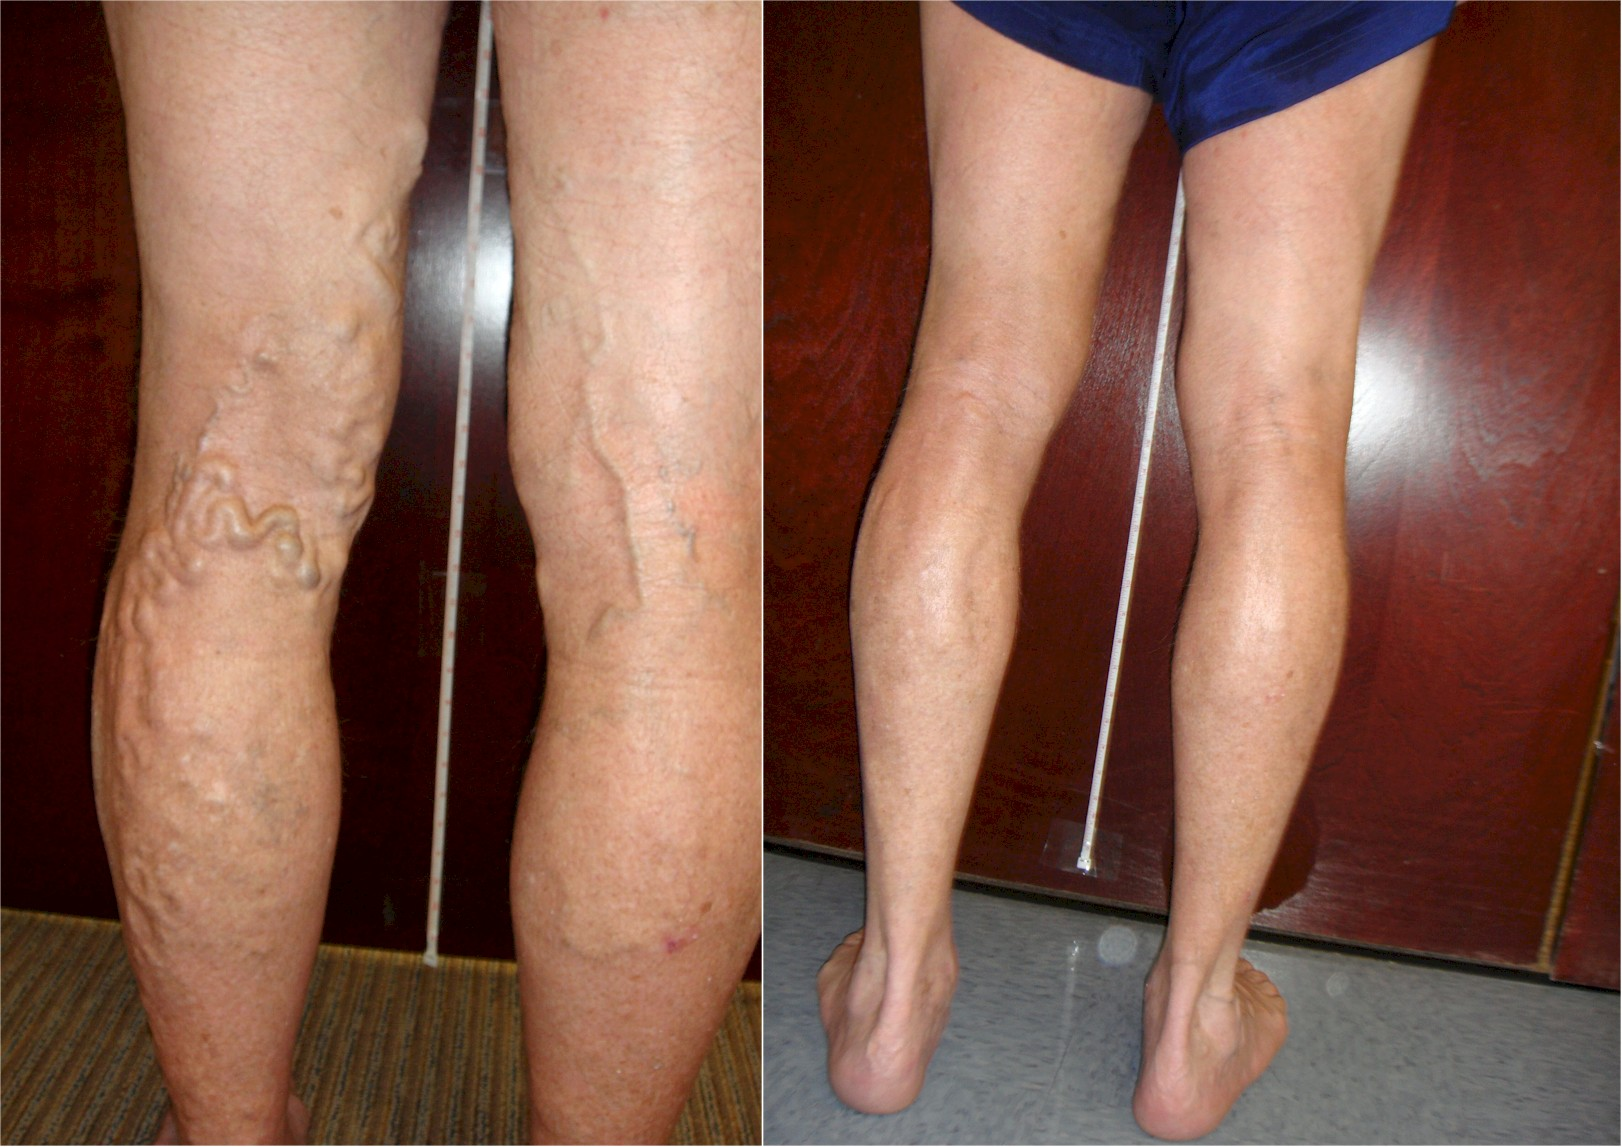 5 Tips for Relieving Painful Varicose Veins